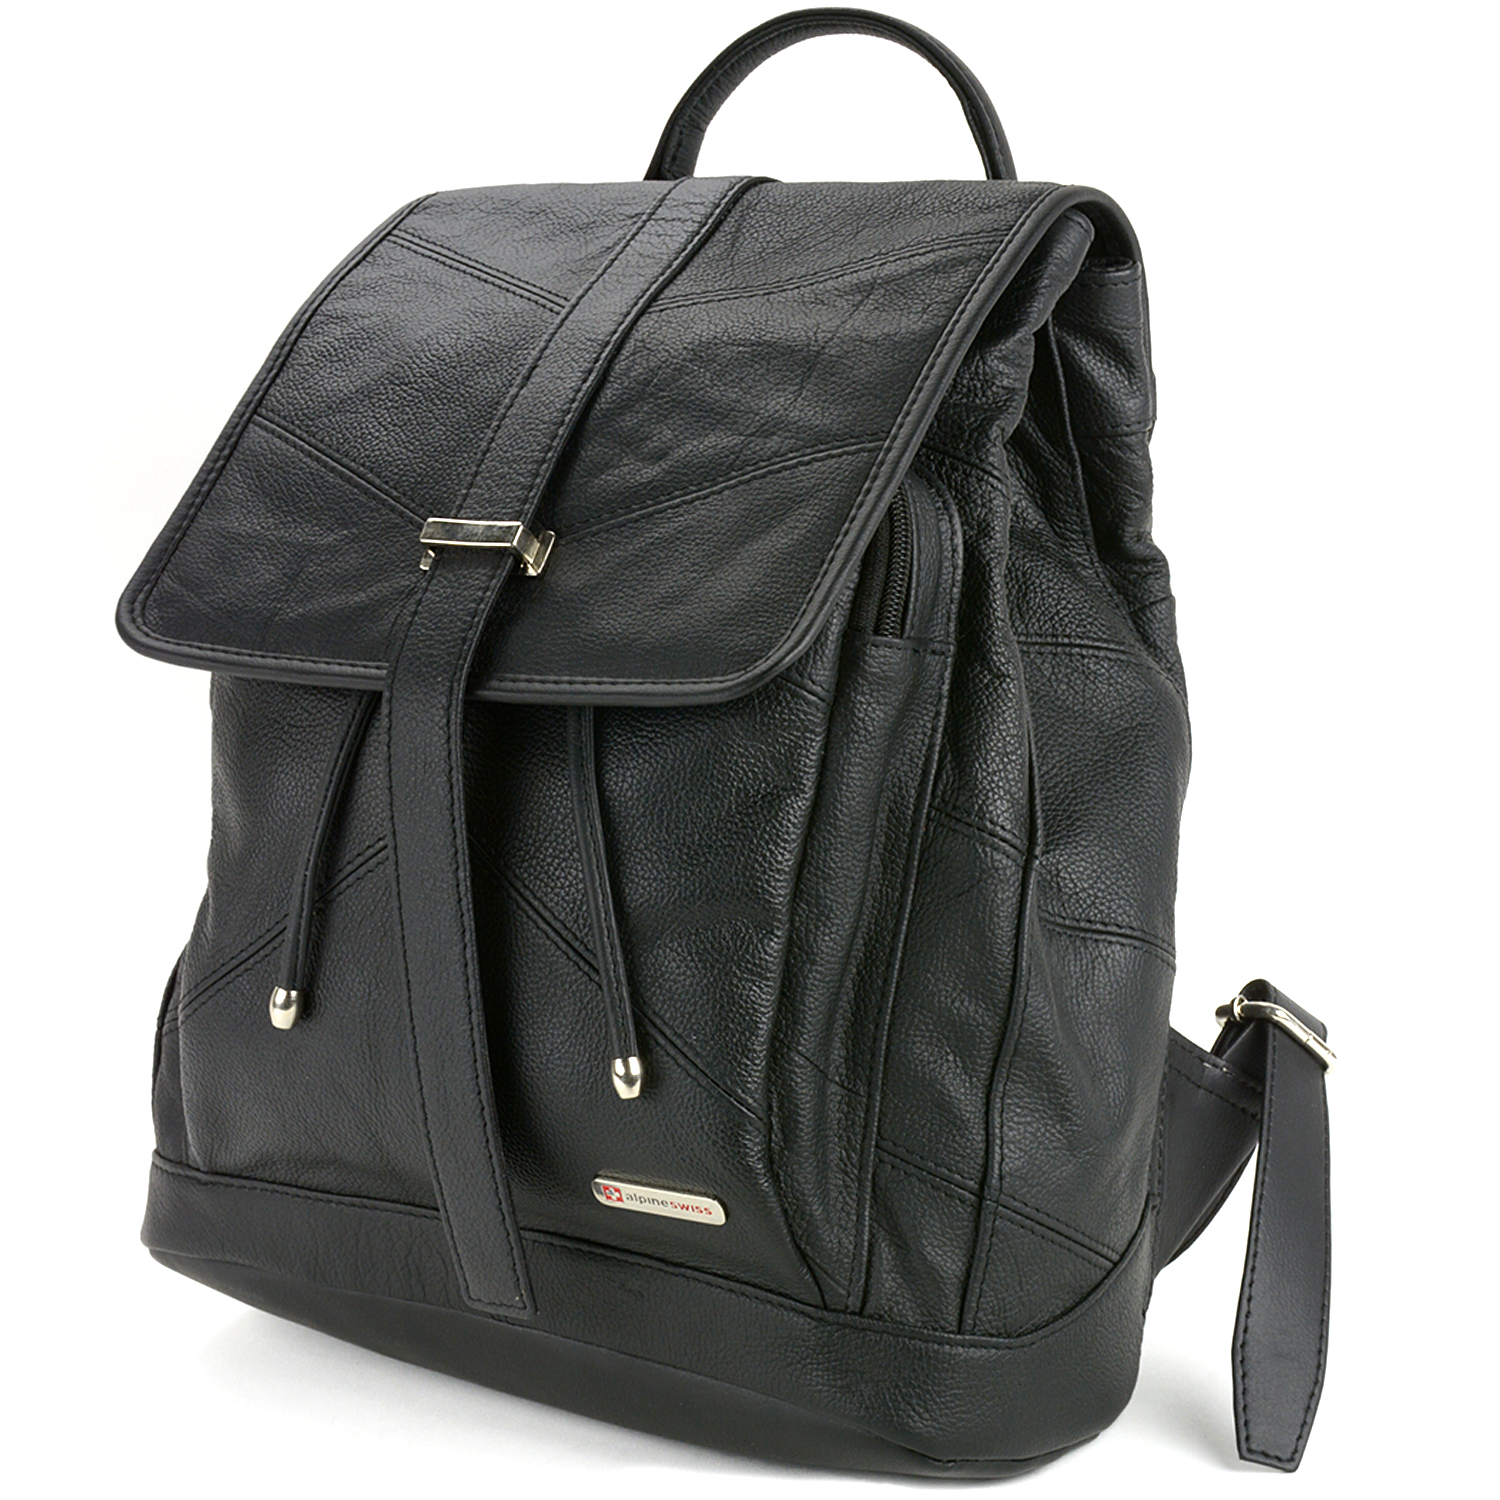 Leather Backpack Handbags KKqDtv6q